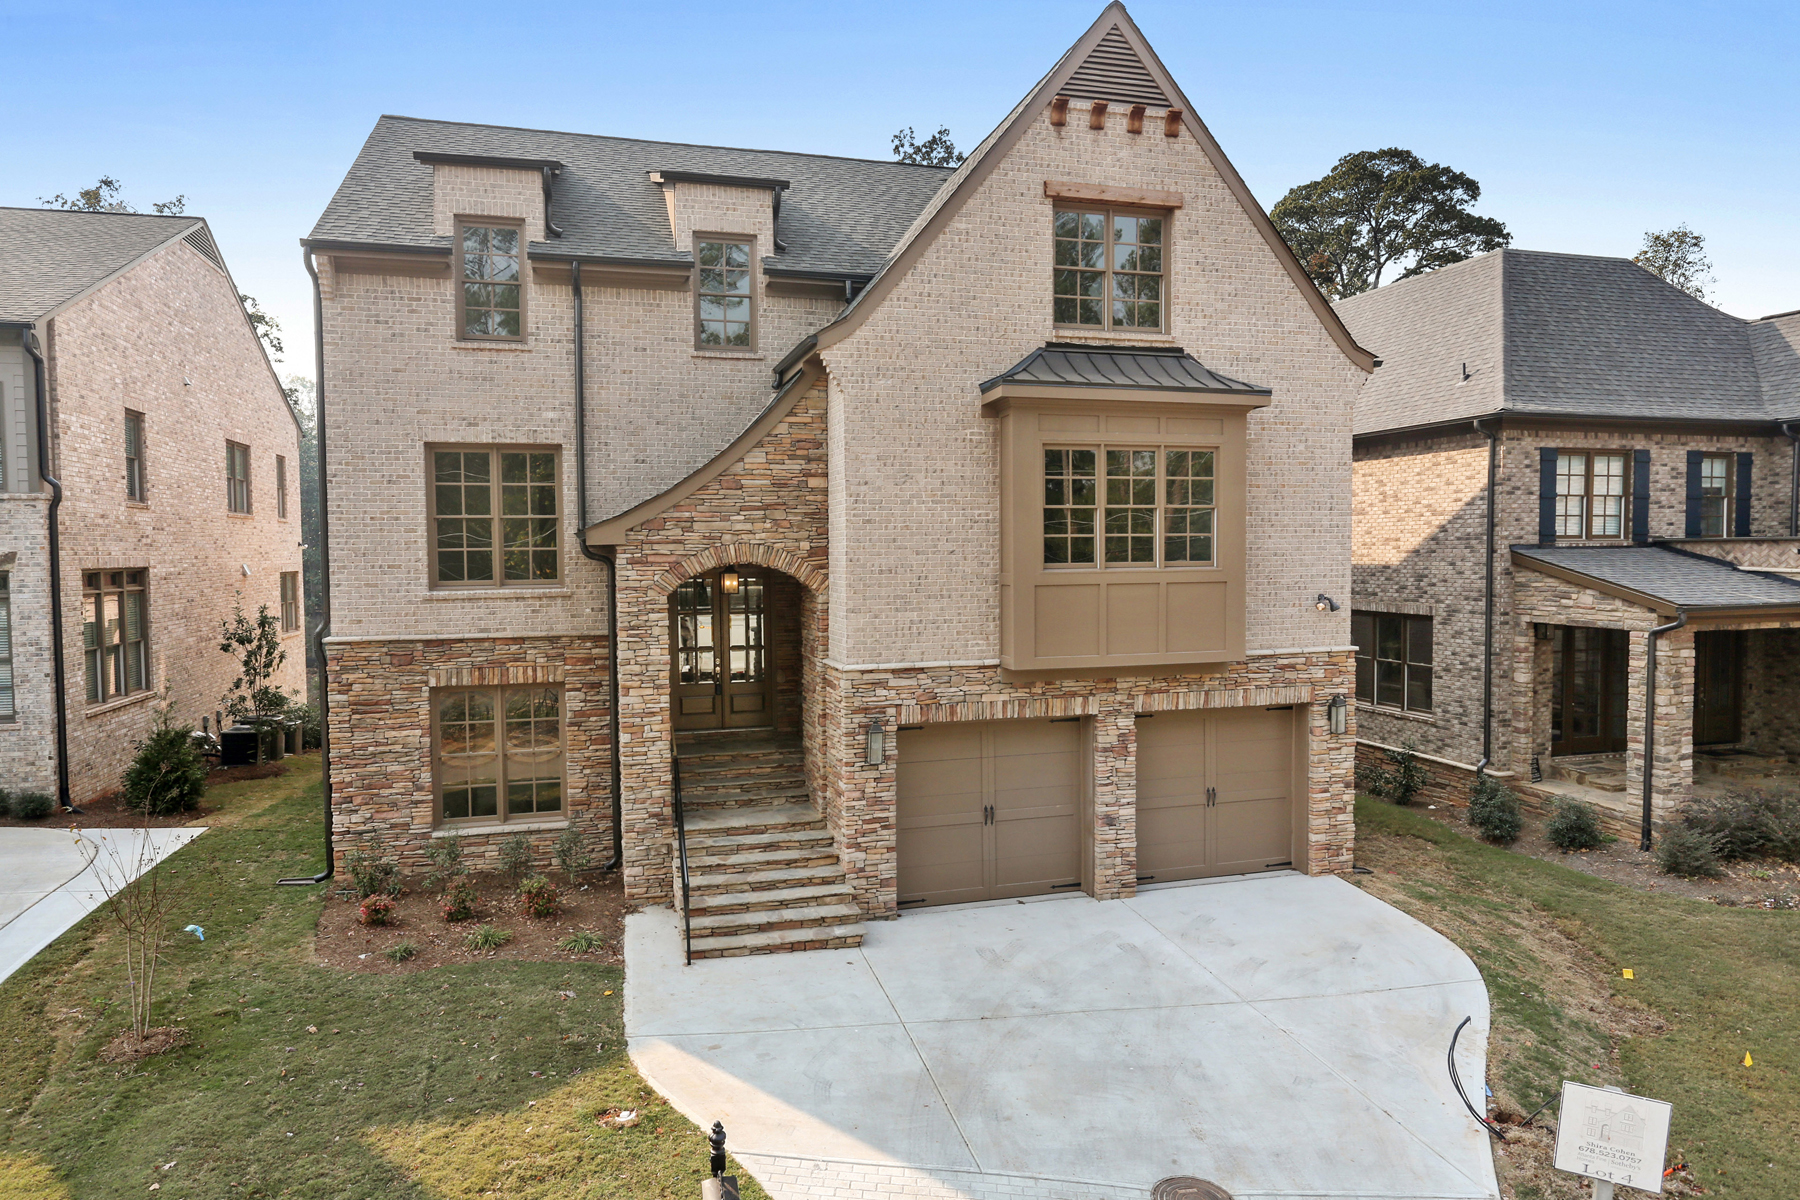 Single Family Home for Sale at New Construction Home In Brookhaven 3828 Chamblee Dunwoody Road Atlanta, Georgia, 30341 United States